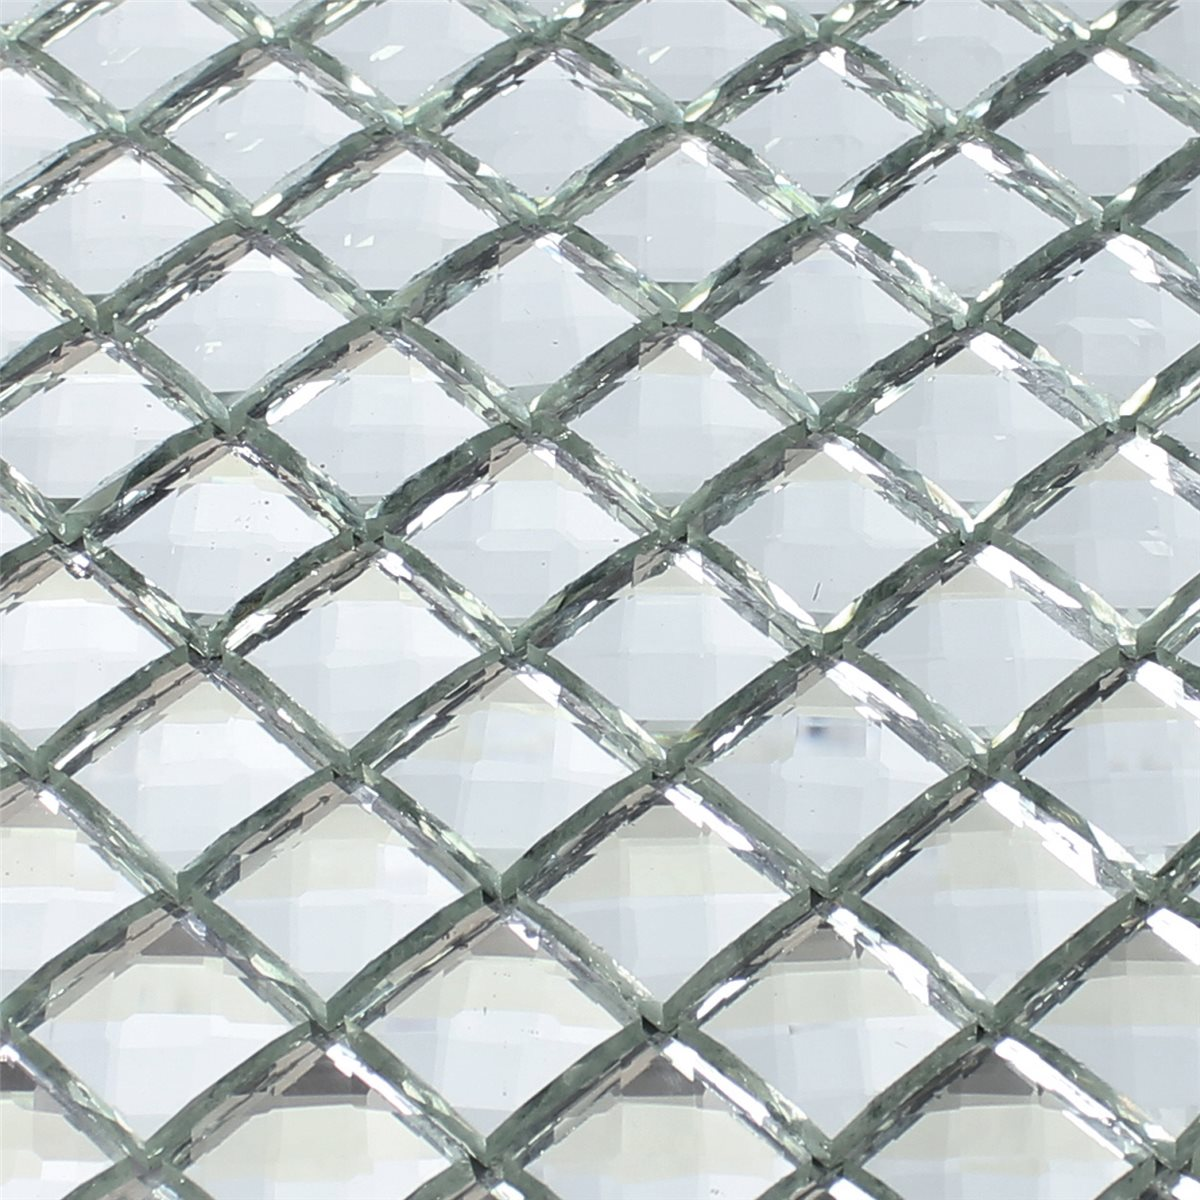 Funky Chicken Wire Safety Glass Image - Electrical Diagram Ideas ...